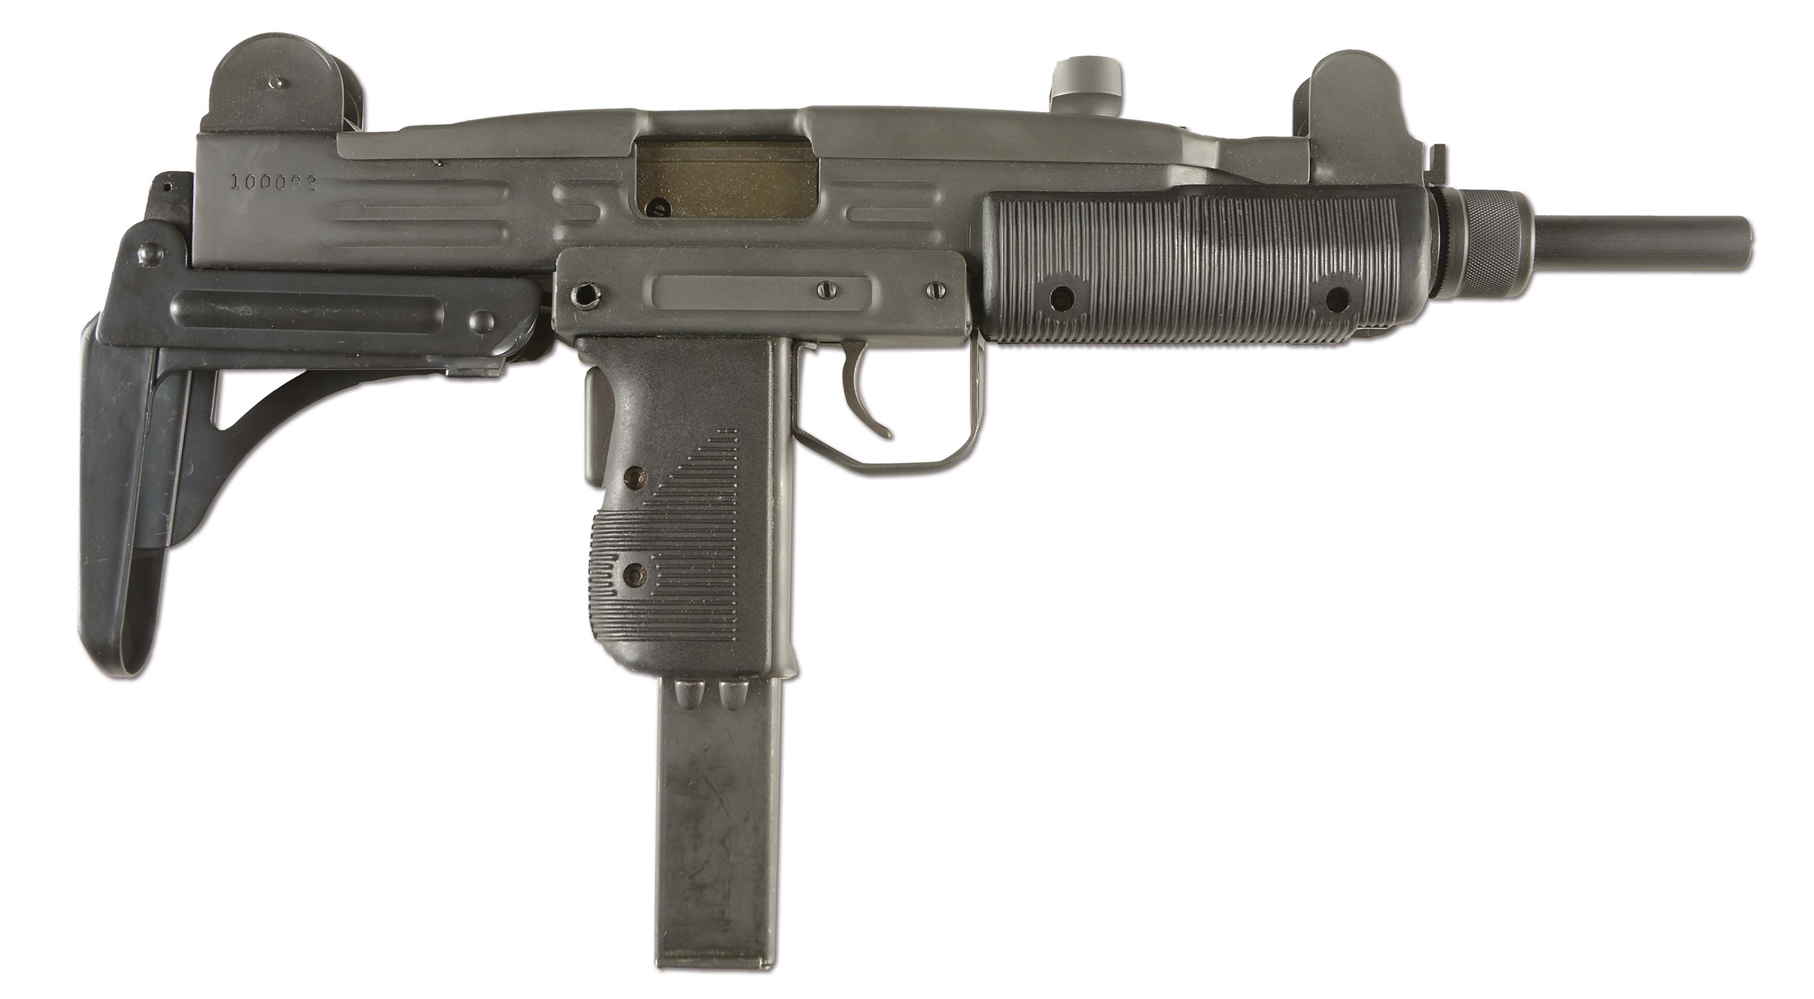 (N) DOCUMENTED VERY FIRST GROUP INDUSTRIES/VECTOR ARMS HR 4332 UZI MACHINE GUN (FULLY TRANSFERABLE).